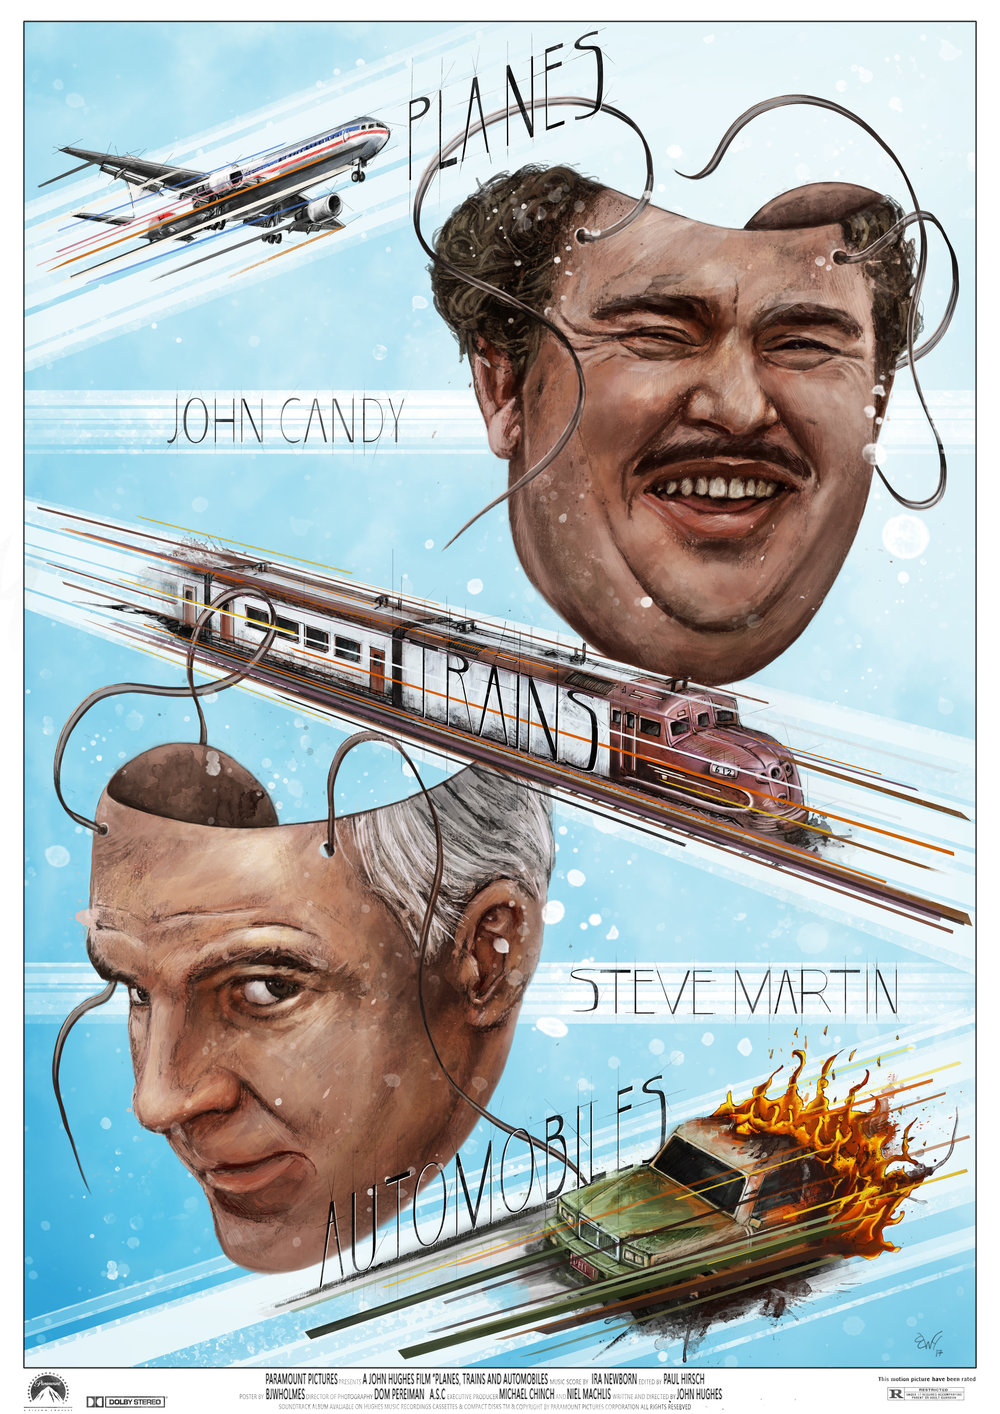 Planes Trains and Automobile poster Ben Holmes